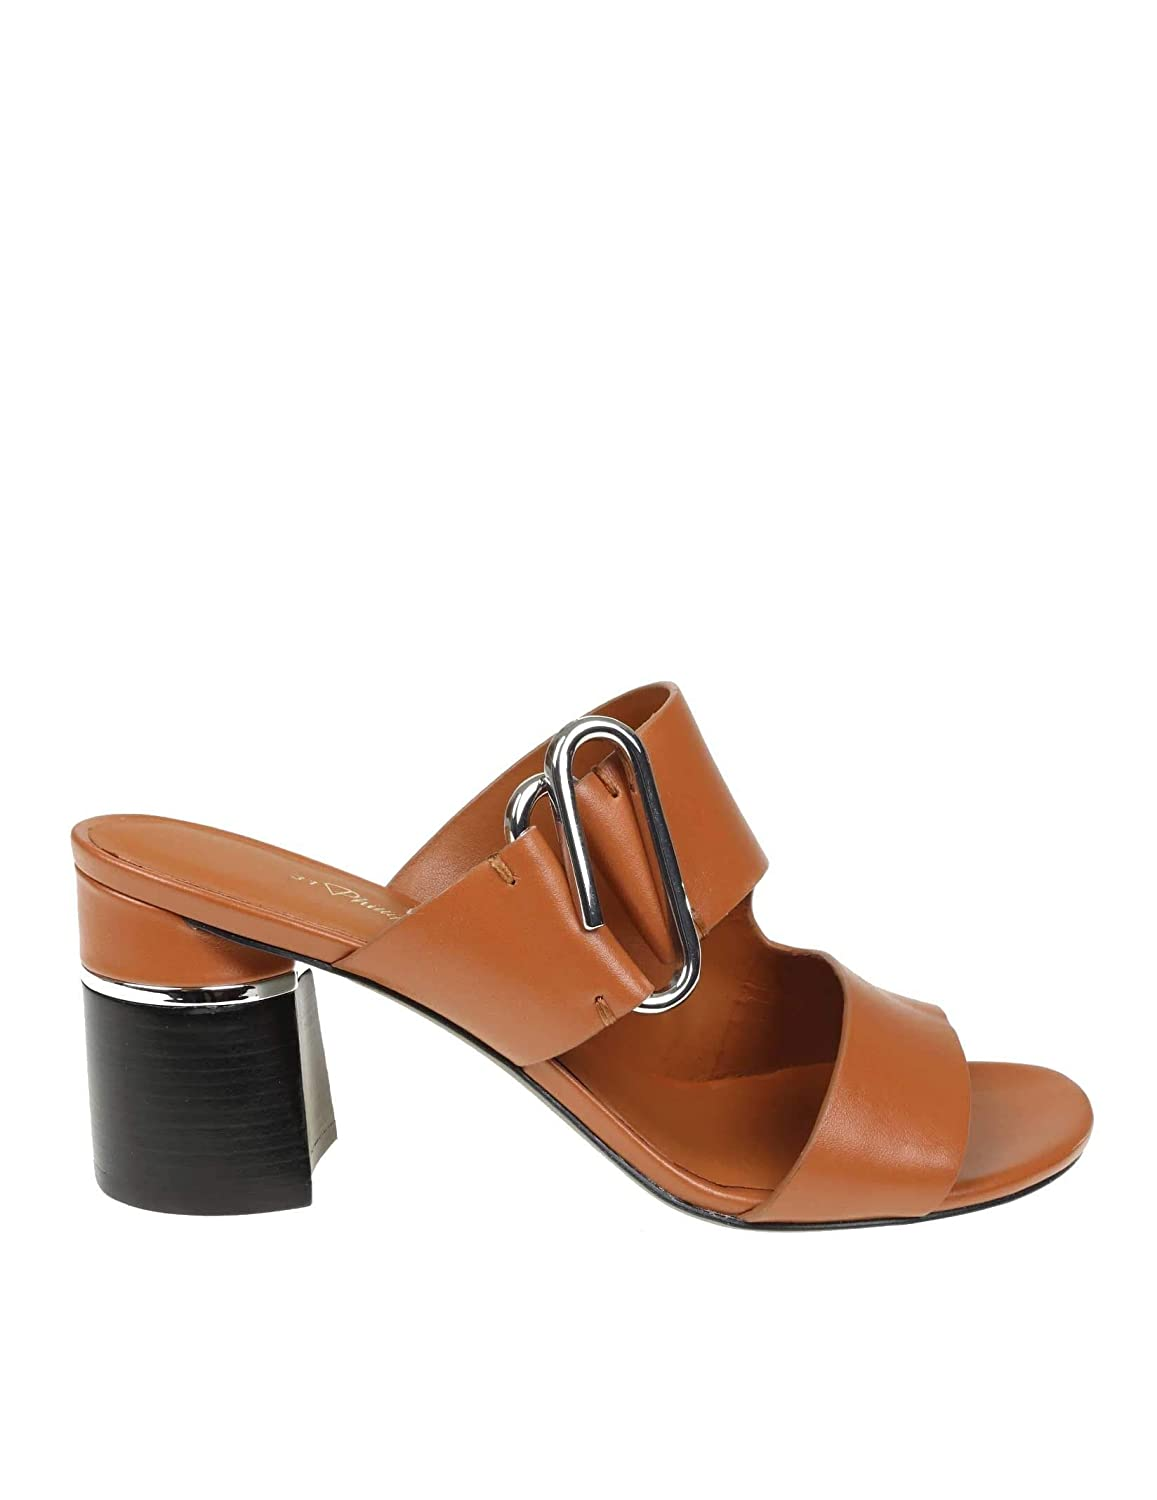 - 3.1 Phillip Lim Women's SHS9T591FDRCO211 Brown Leather Sandals